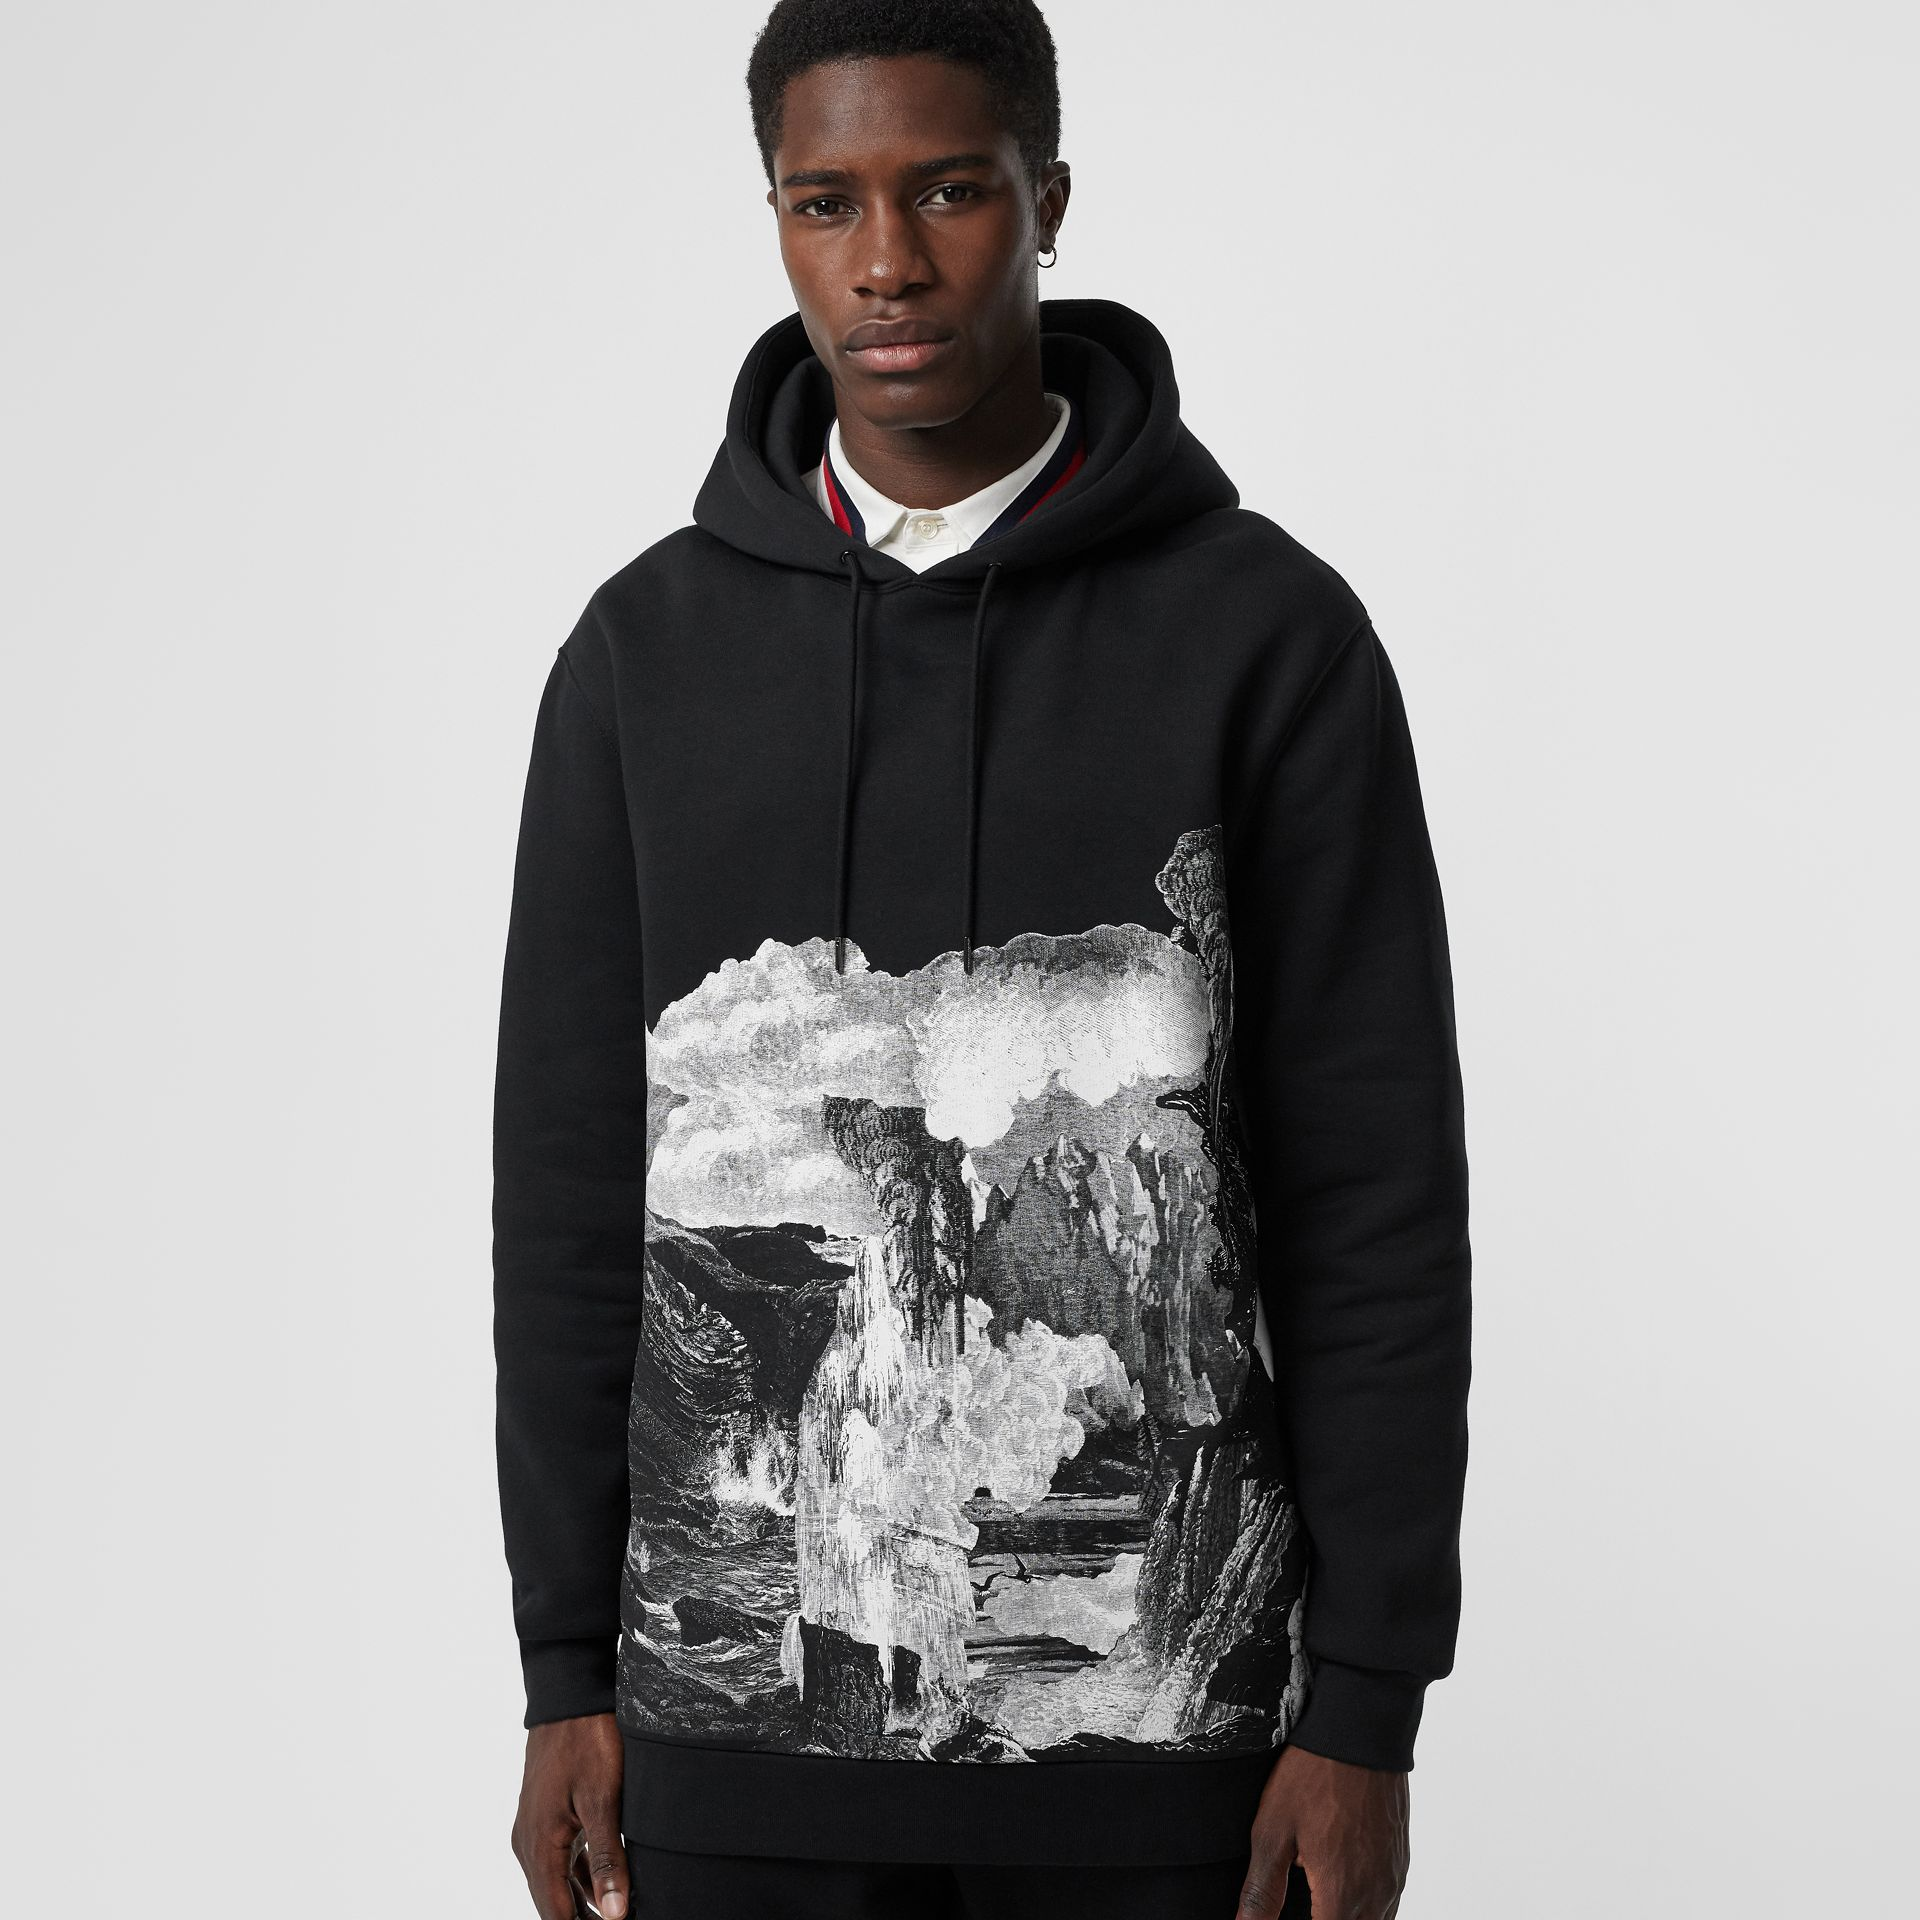 Dreamscape Print Cotton Blend Hoodie in Black - Men | Burberry United Kingdom - gallery image 4